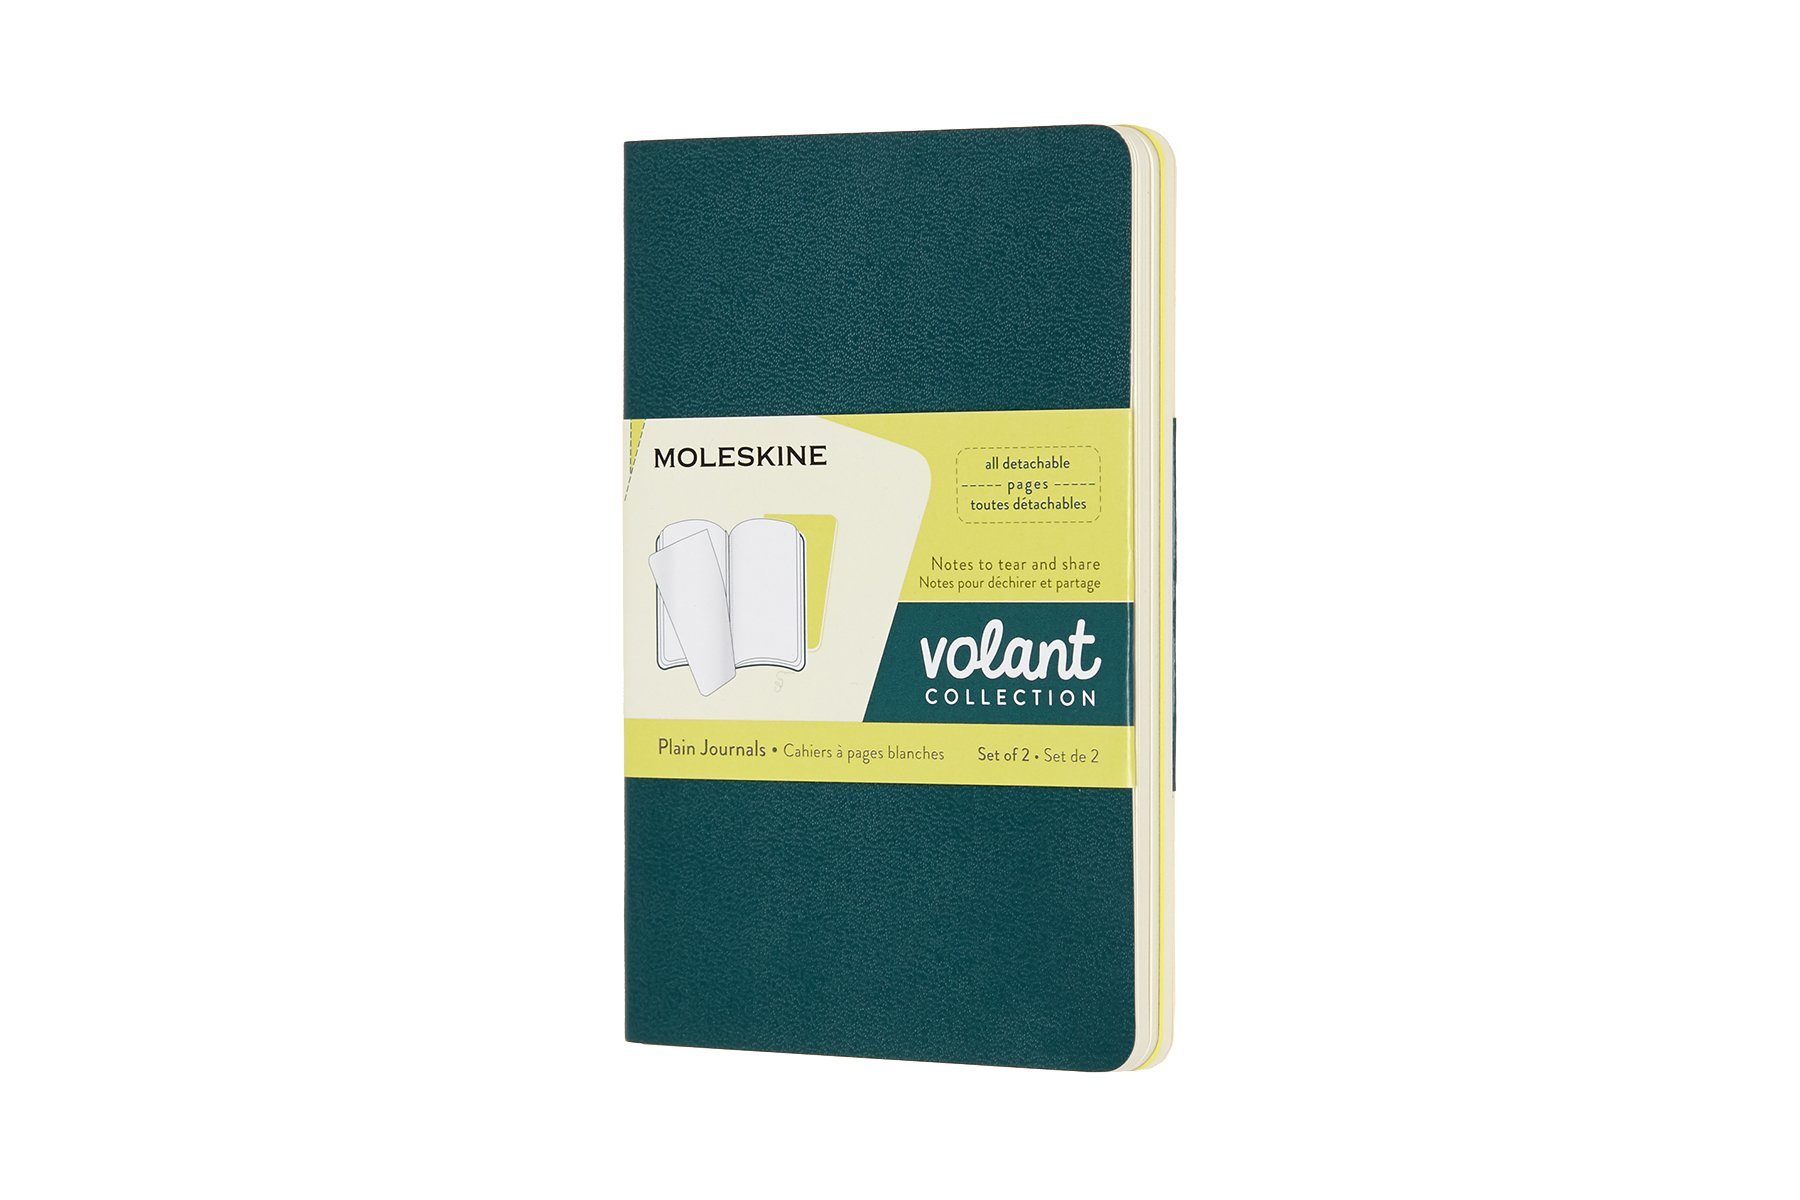 Moleskine Volant Soft Cover Journal, Set of 2, Plain, Pocket